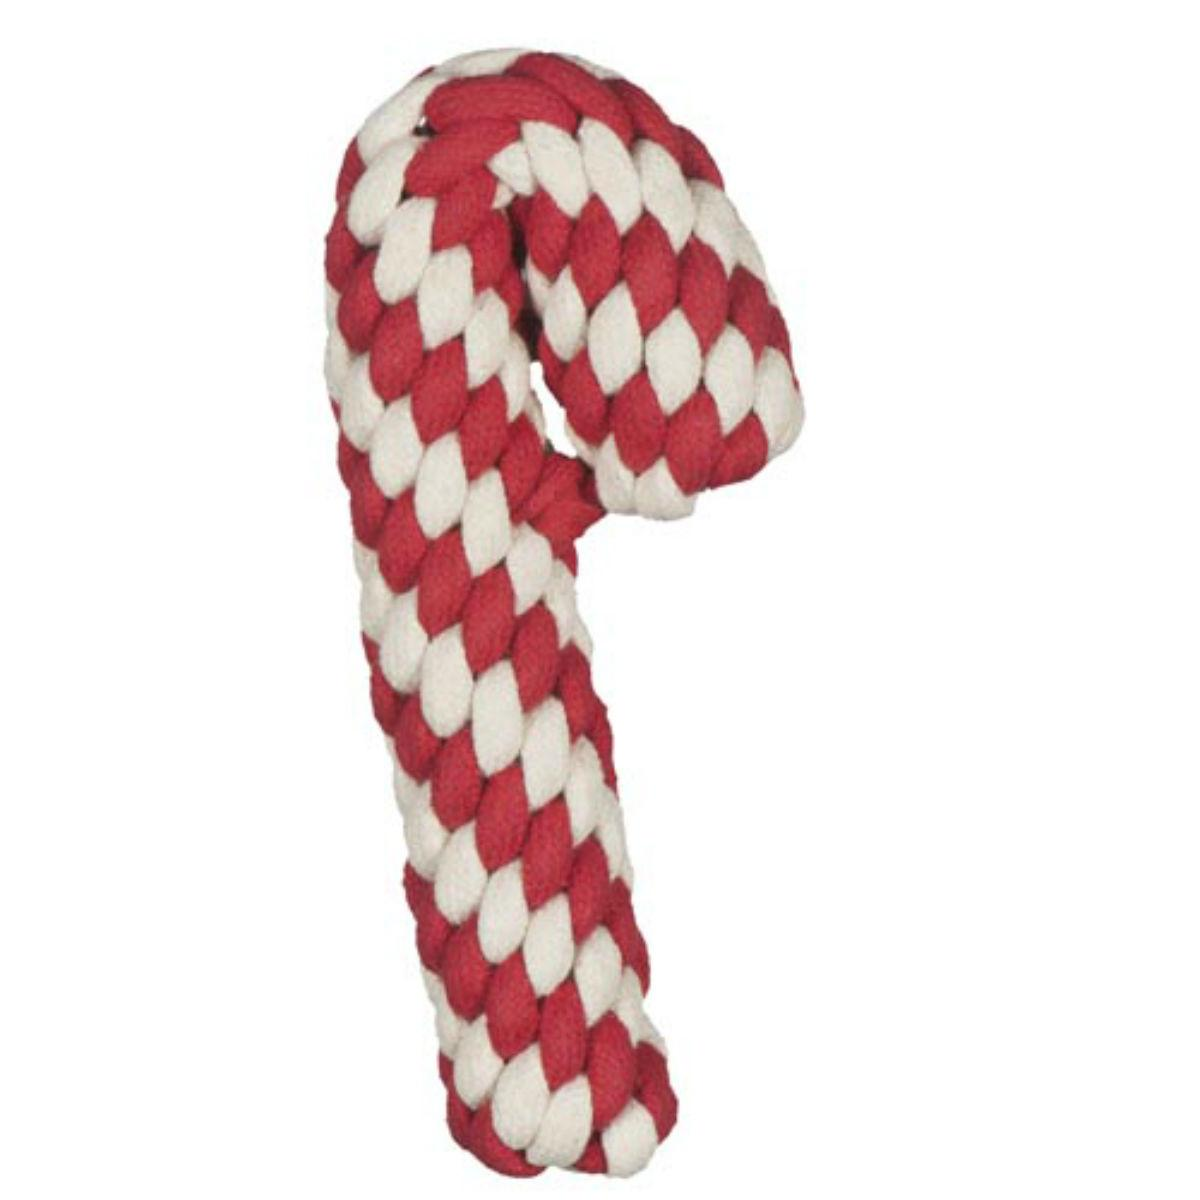 Hugglehounds Candy Cane Rope Dog Toy